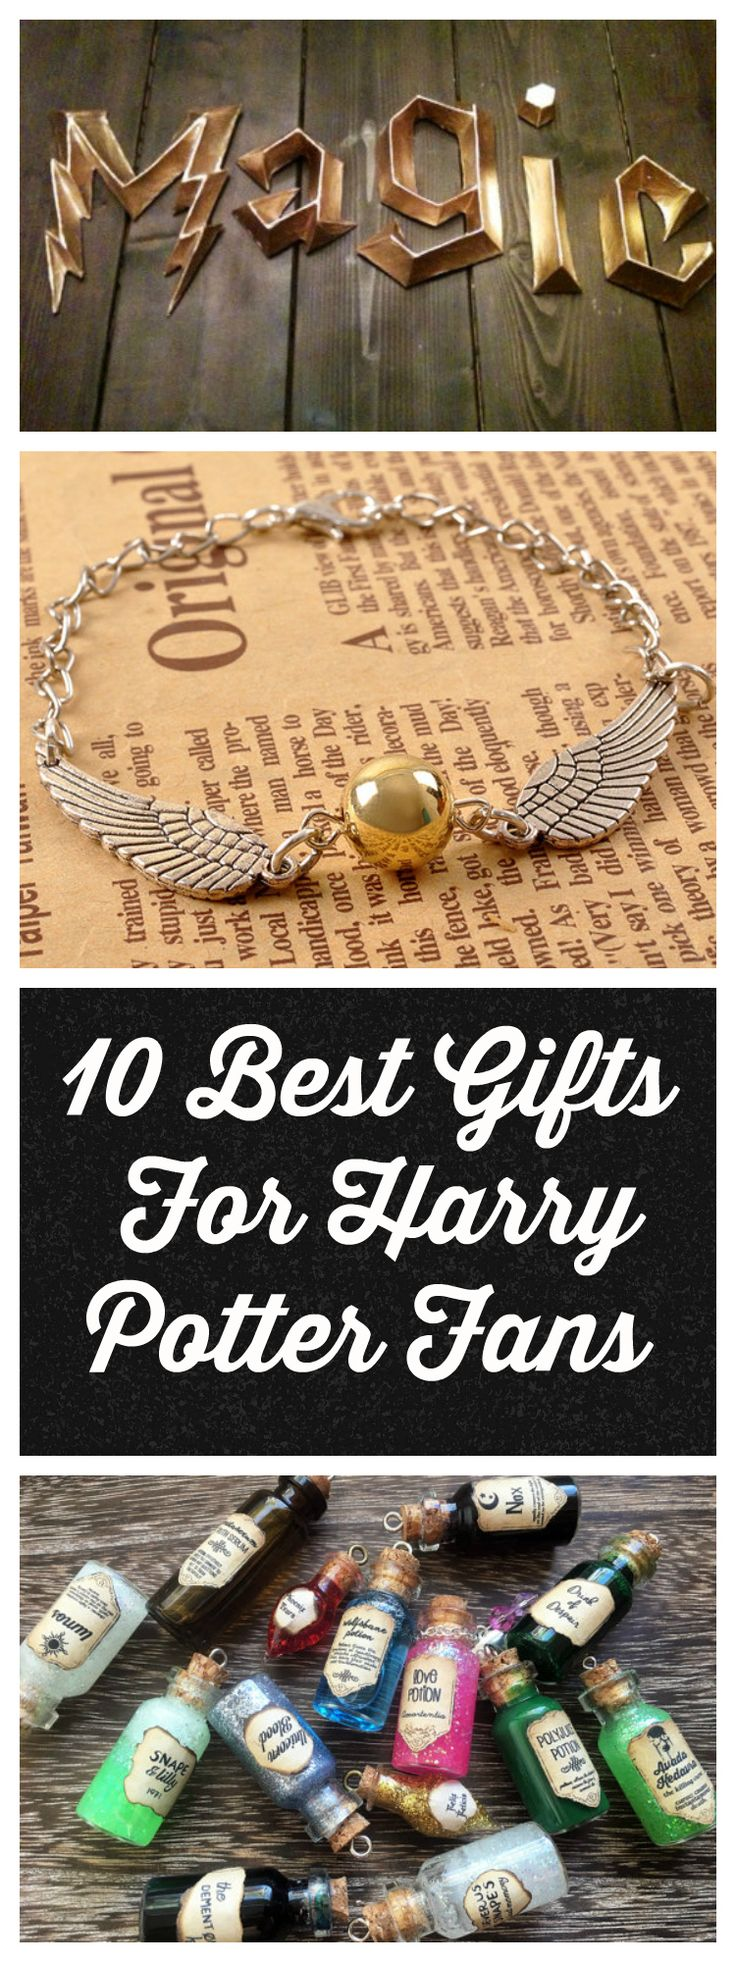 "35 Gifts For Anyone Who Likes ""Harry Potter"" More Than People #harrypotter #gifts #hogwarts The ultimate gift guide for any true Harry Potter fan."